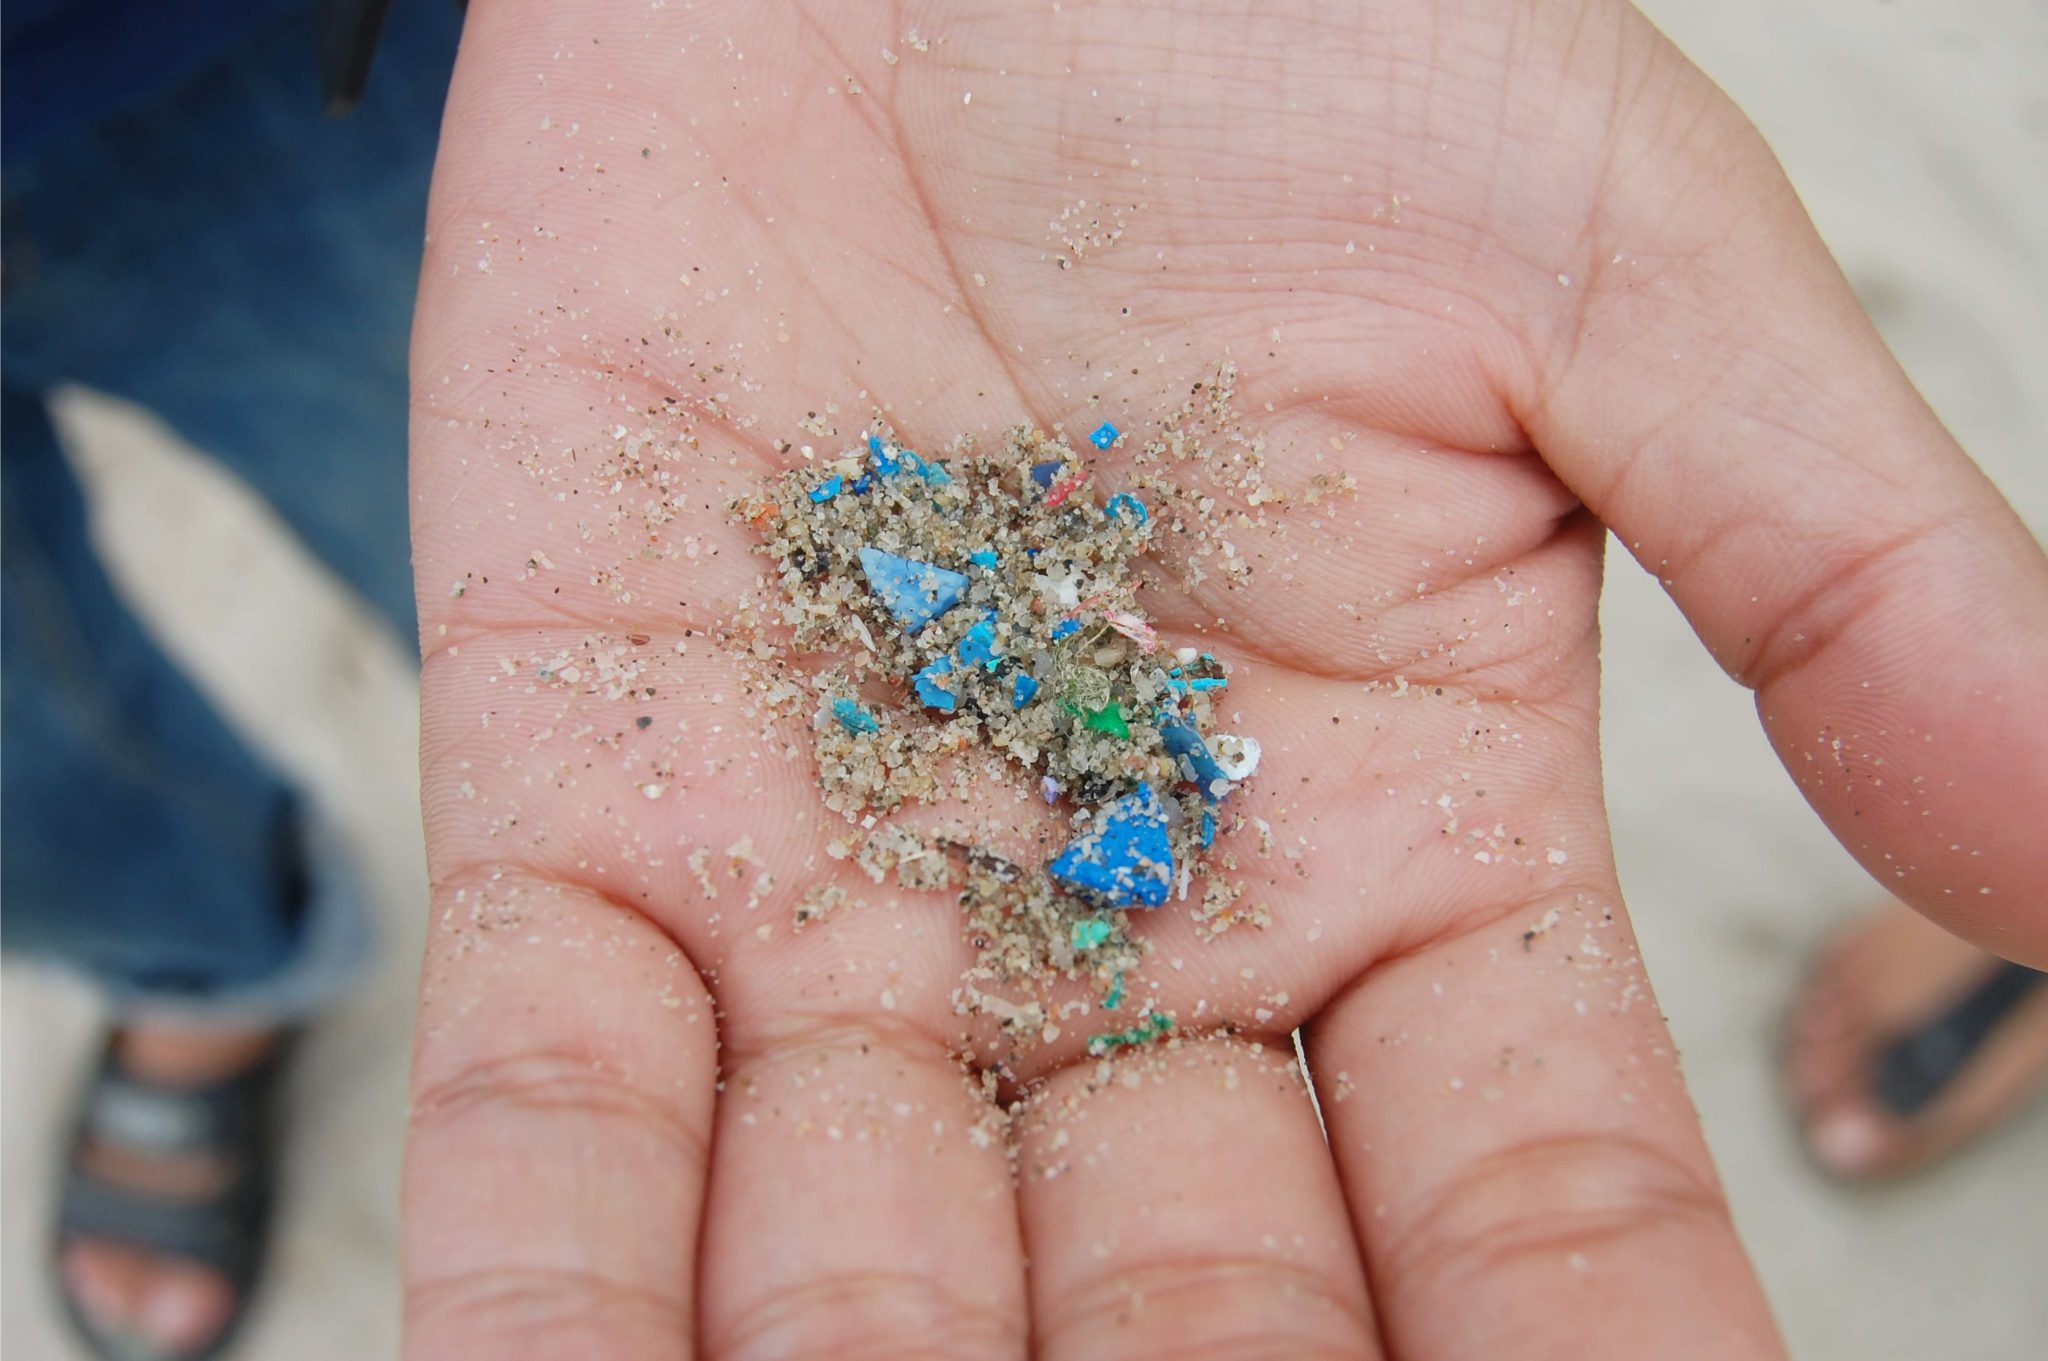 micro plastics an invisible danger to human health